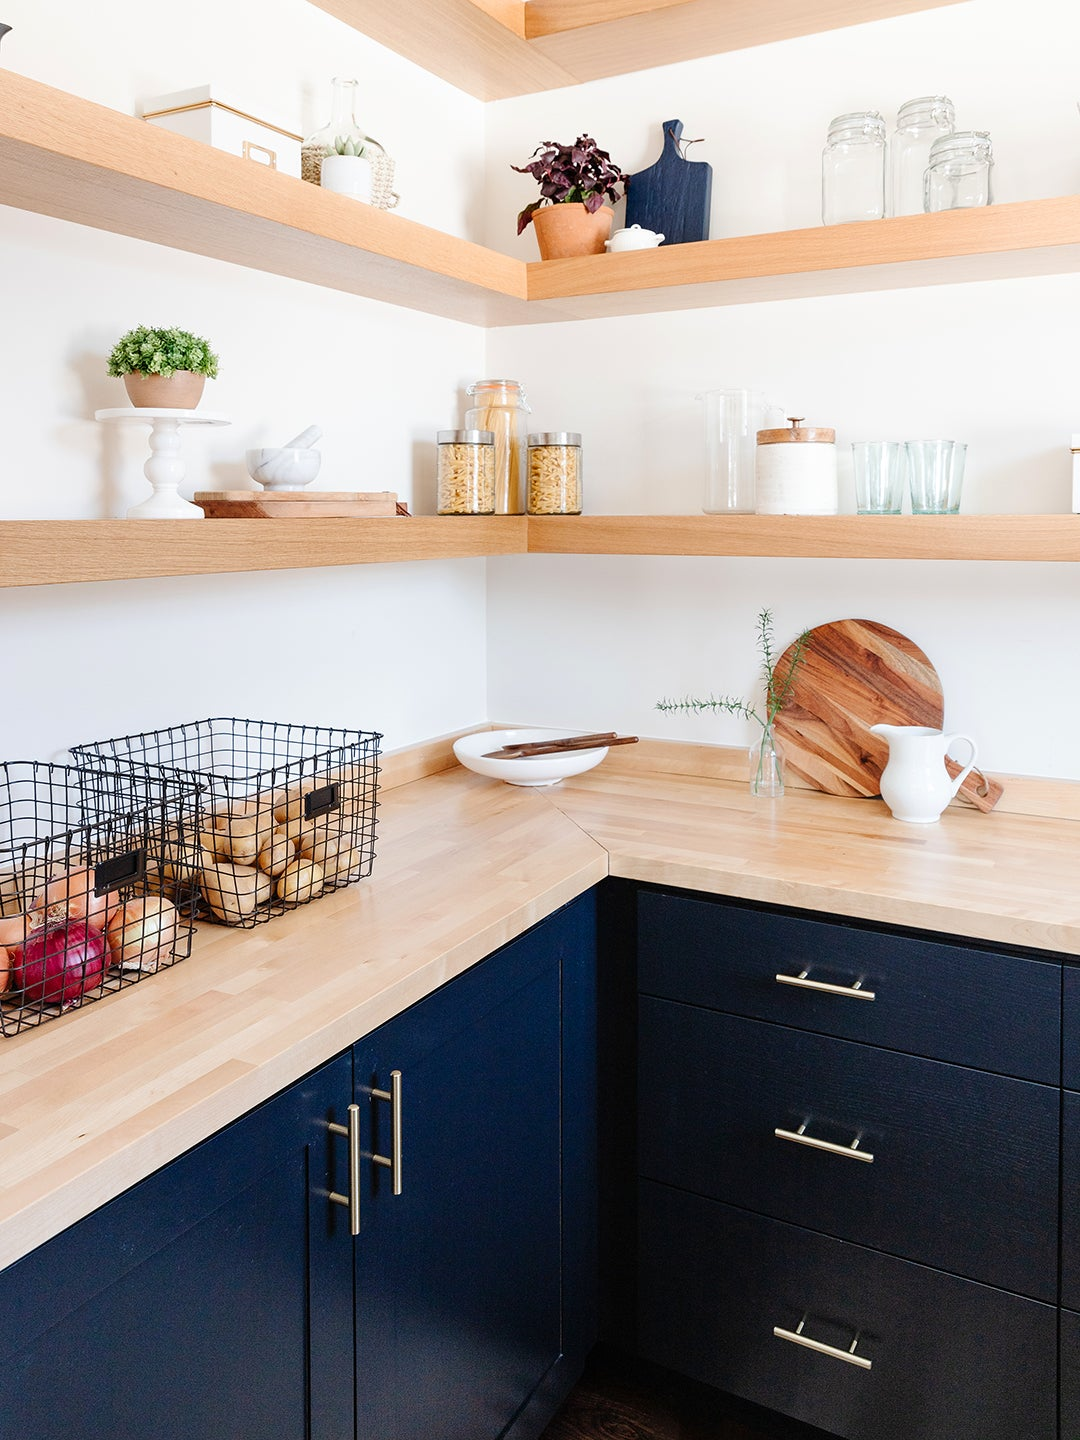 wood countertop with baskets